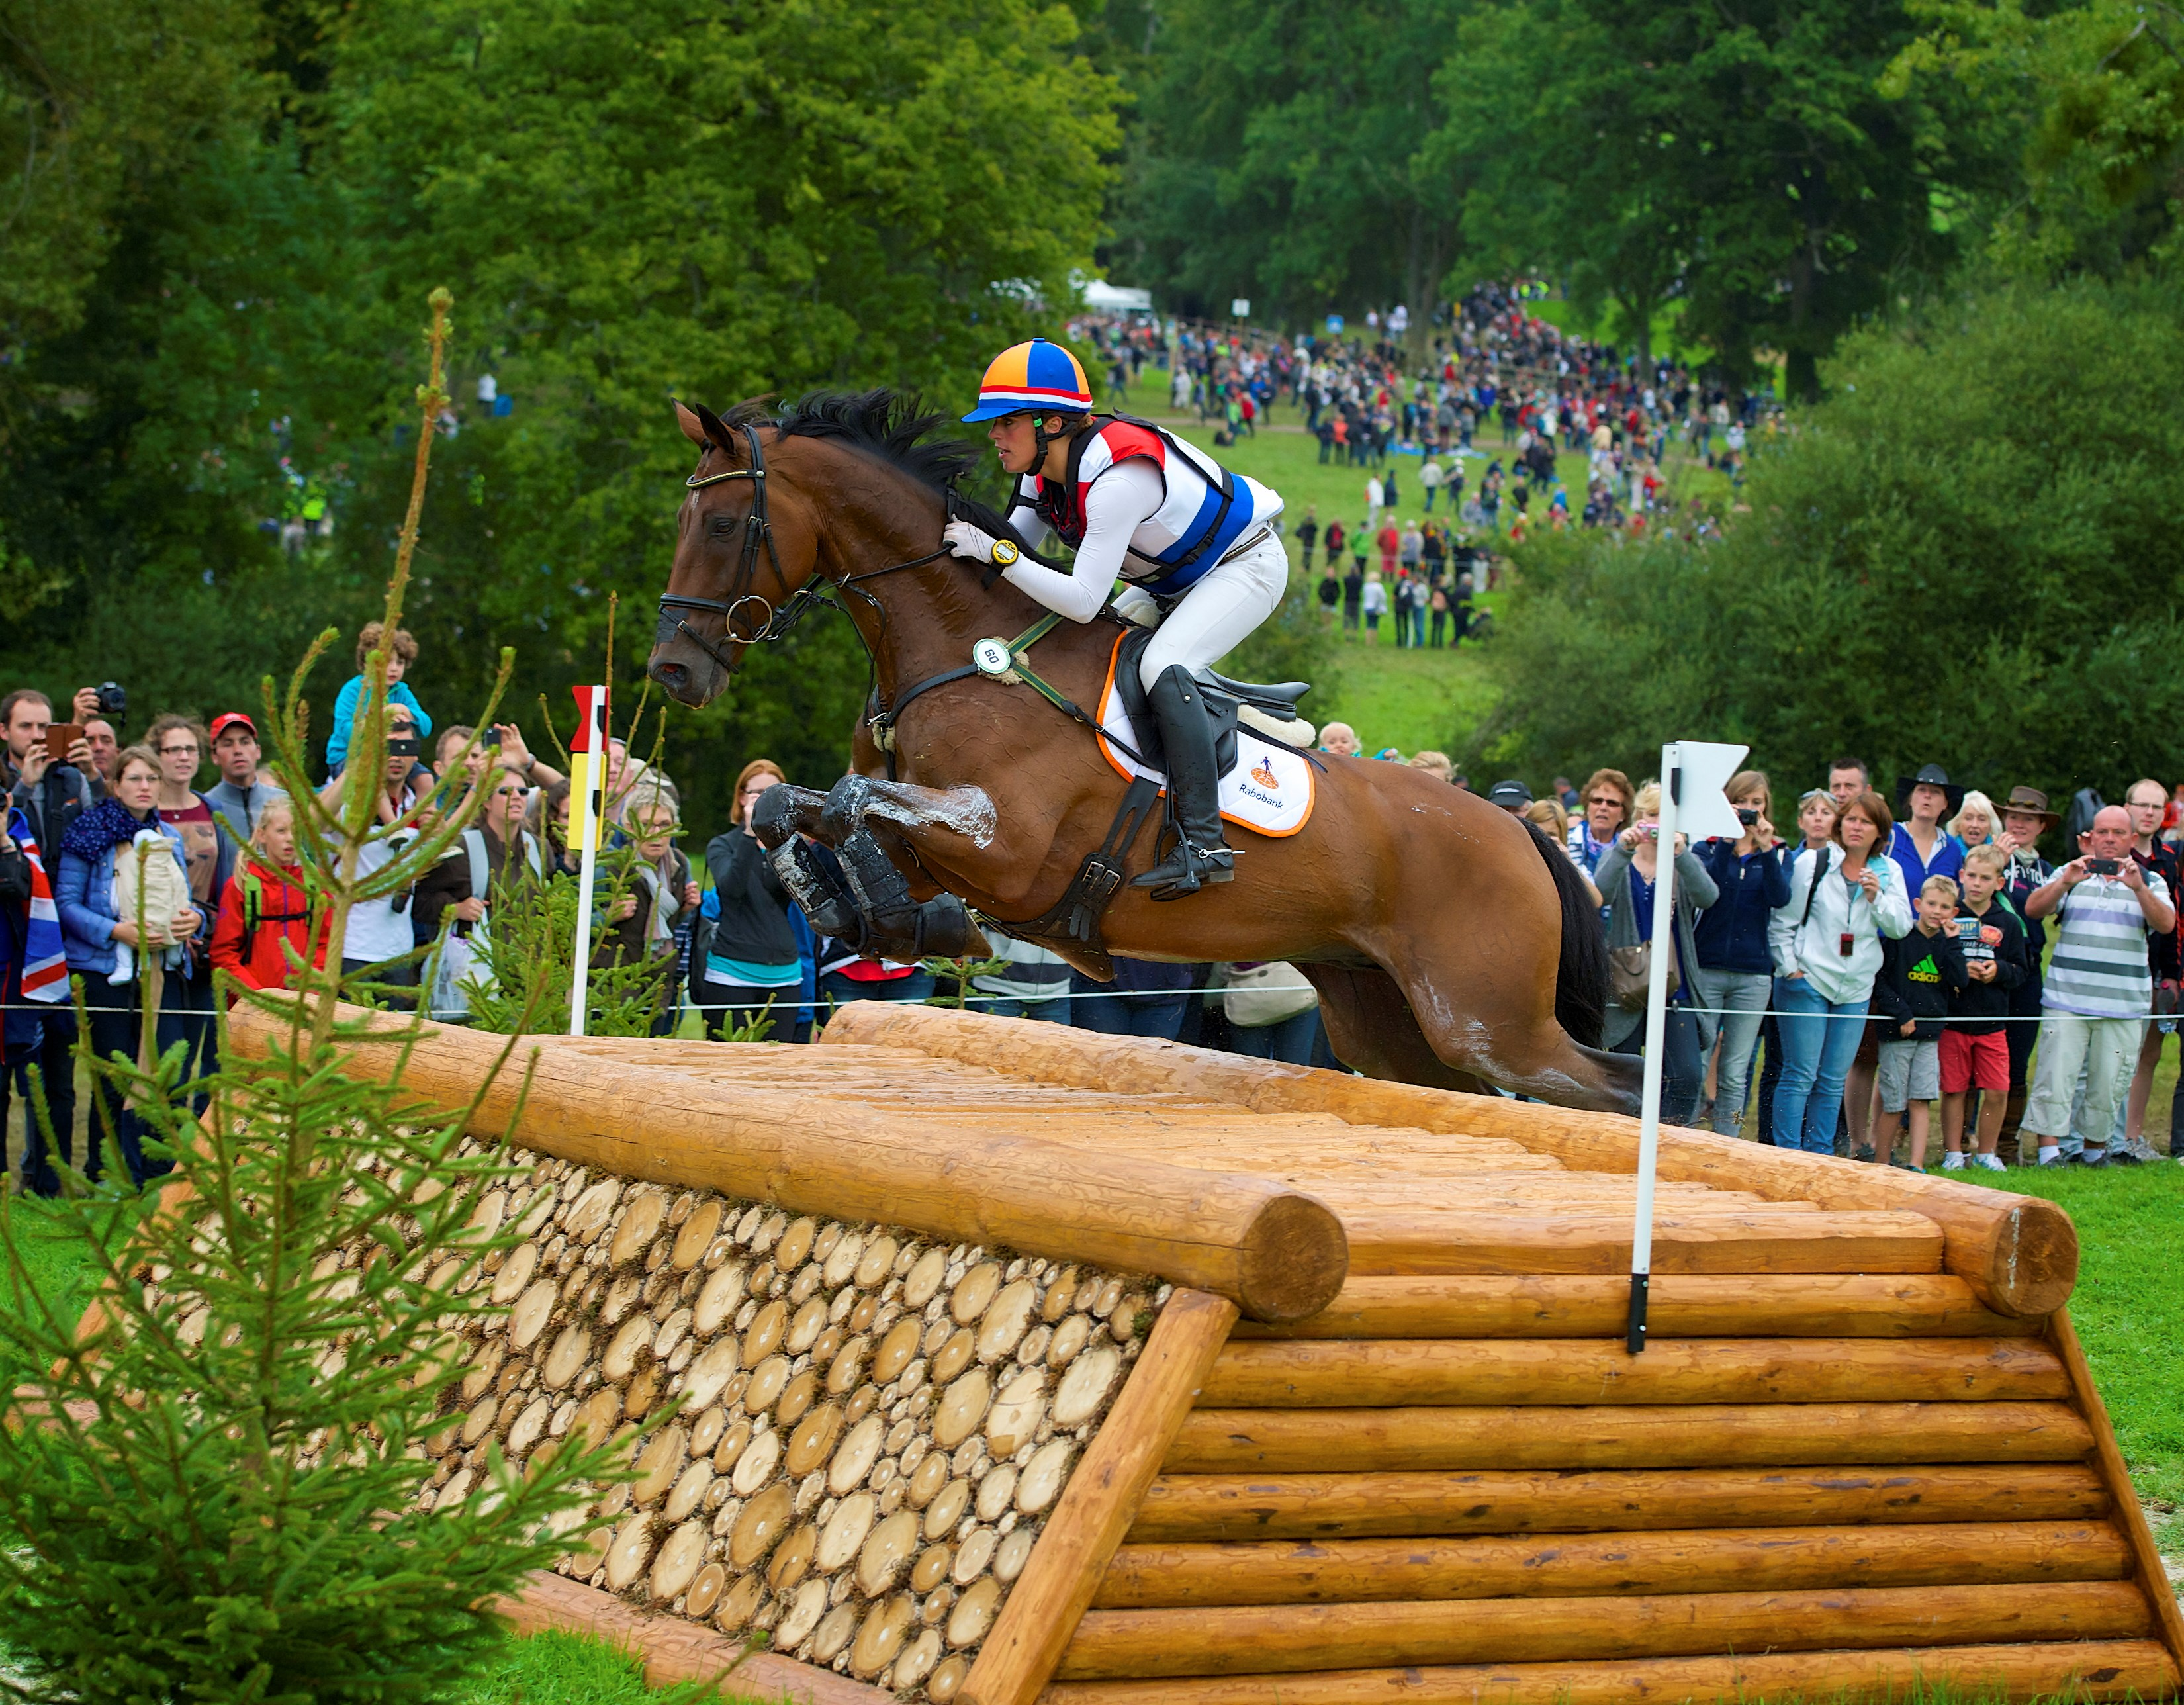 Verslag eventingforum 19 september 2018